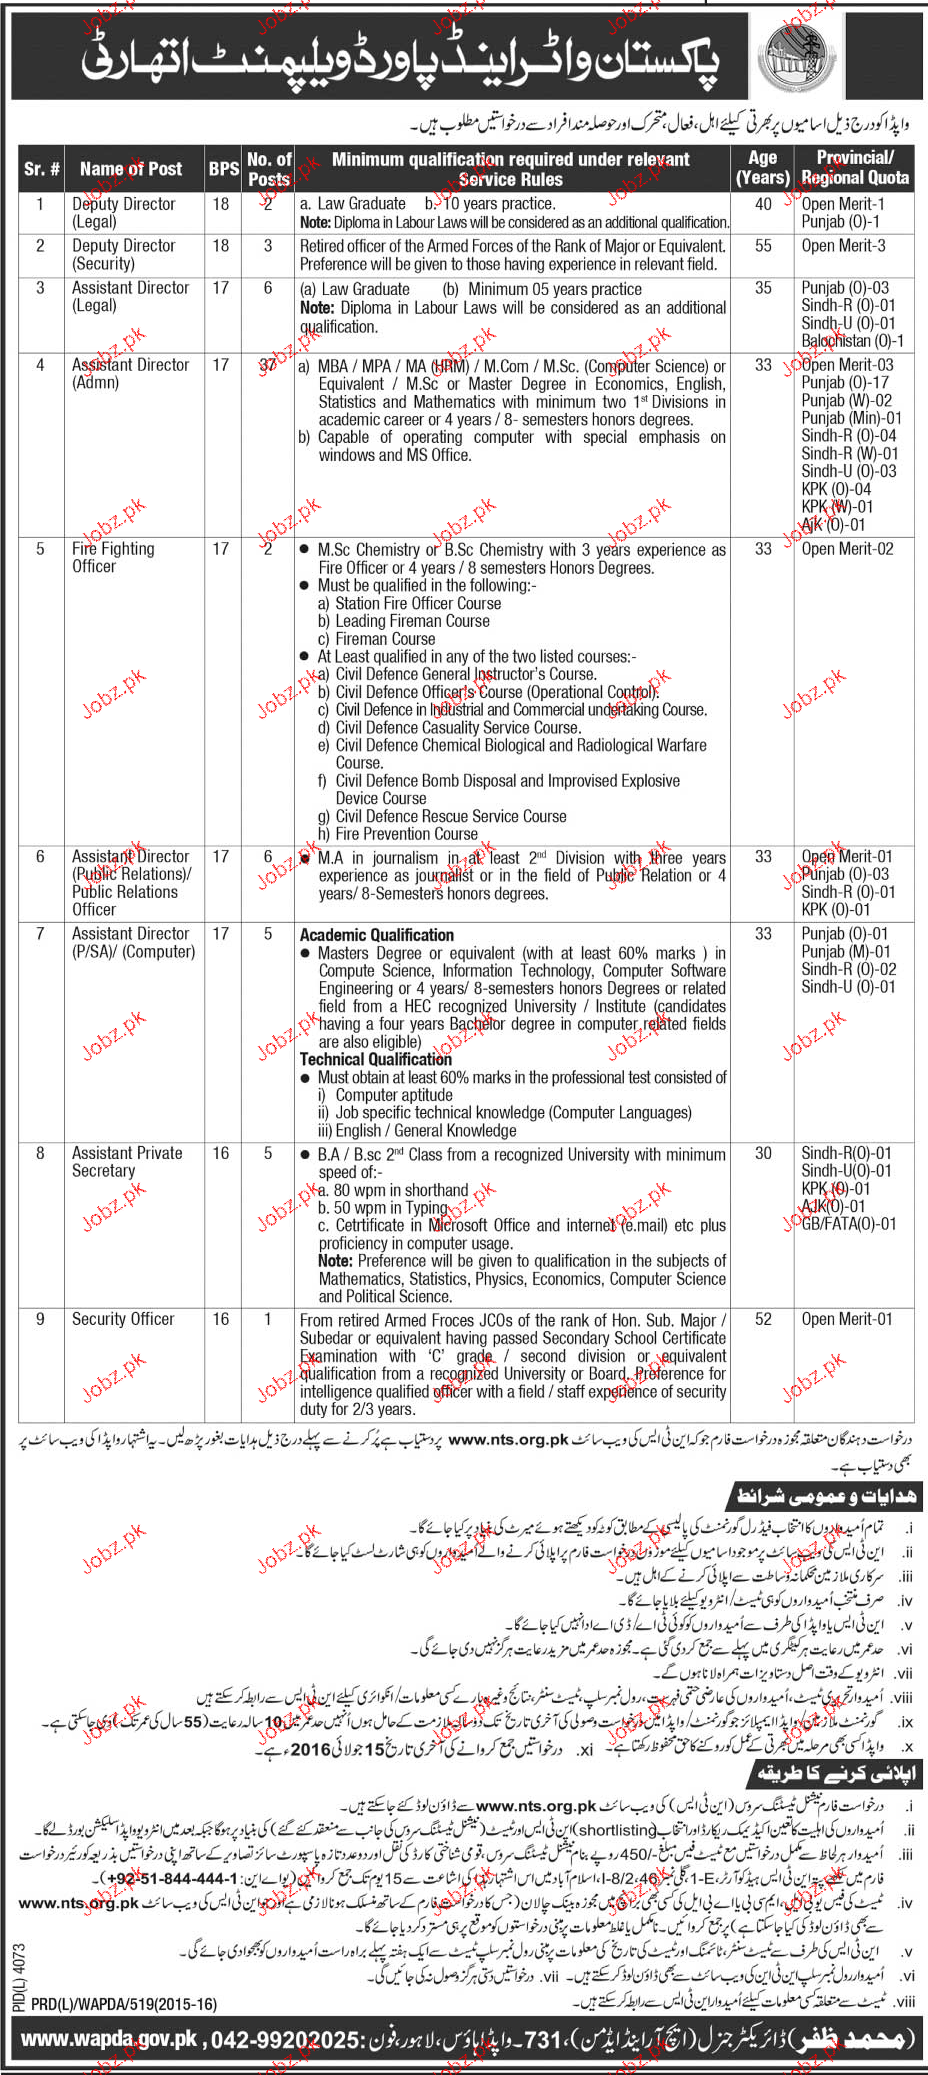 Deputy Director Assistant Director Job in WAPDA 2017 Jobs – Assistant Director Job Description